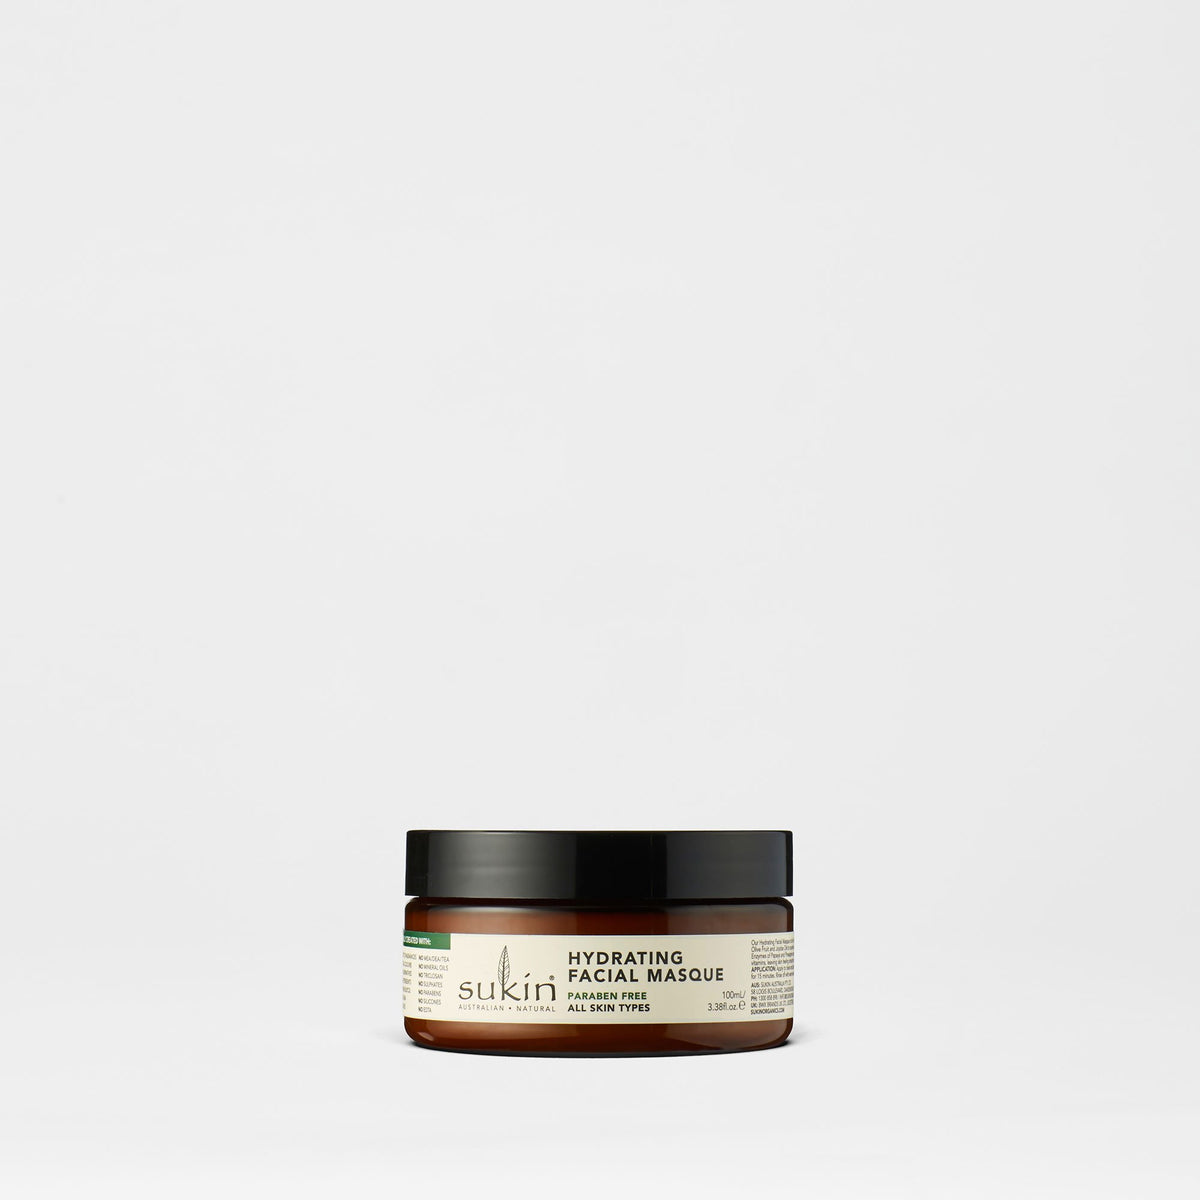 Hydrating Facial Mask | Signature - Sukin Naturals USA